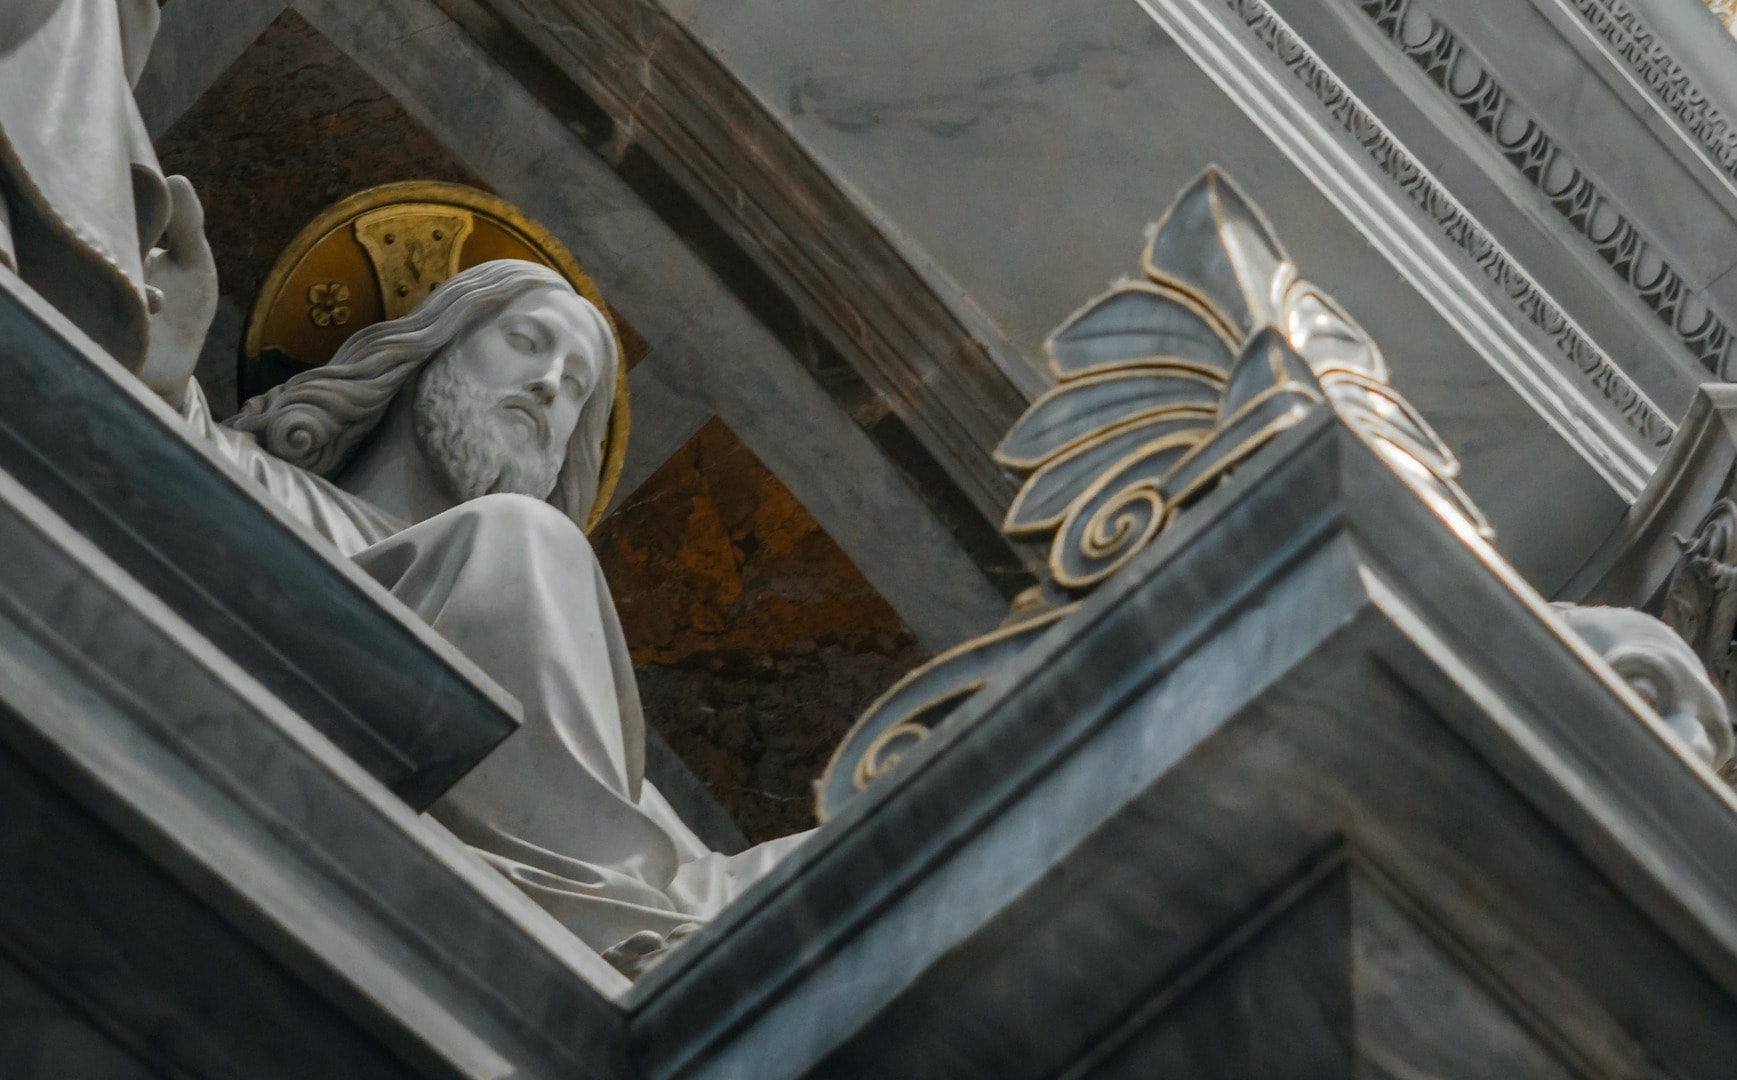 Jesus and the pursuit of justice